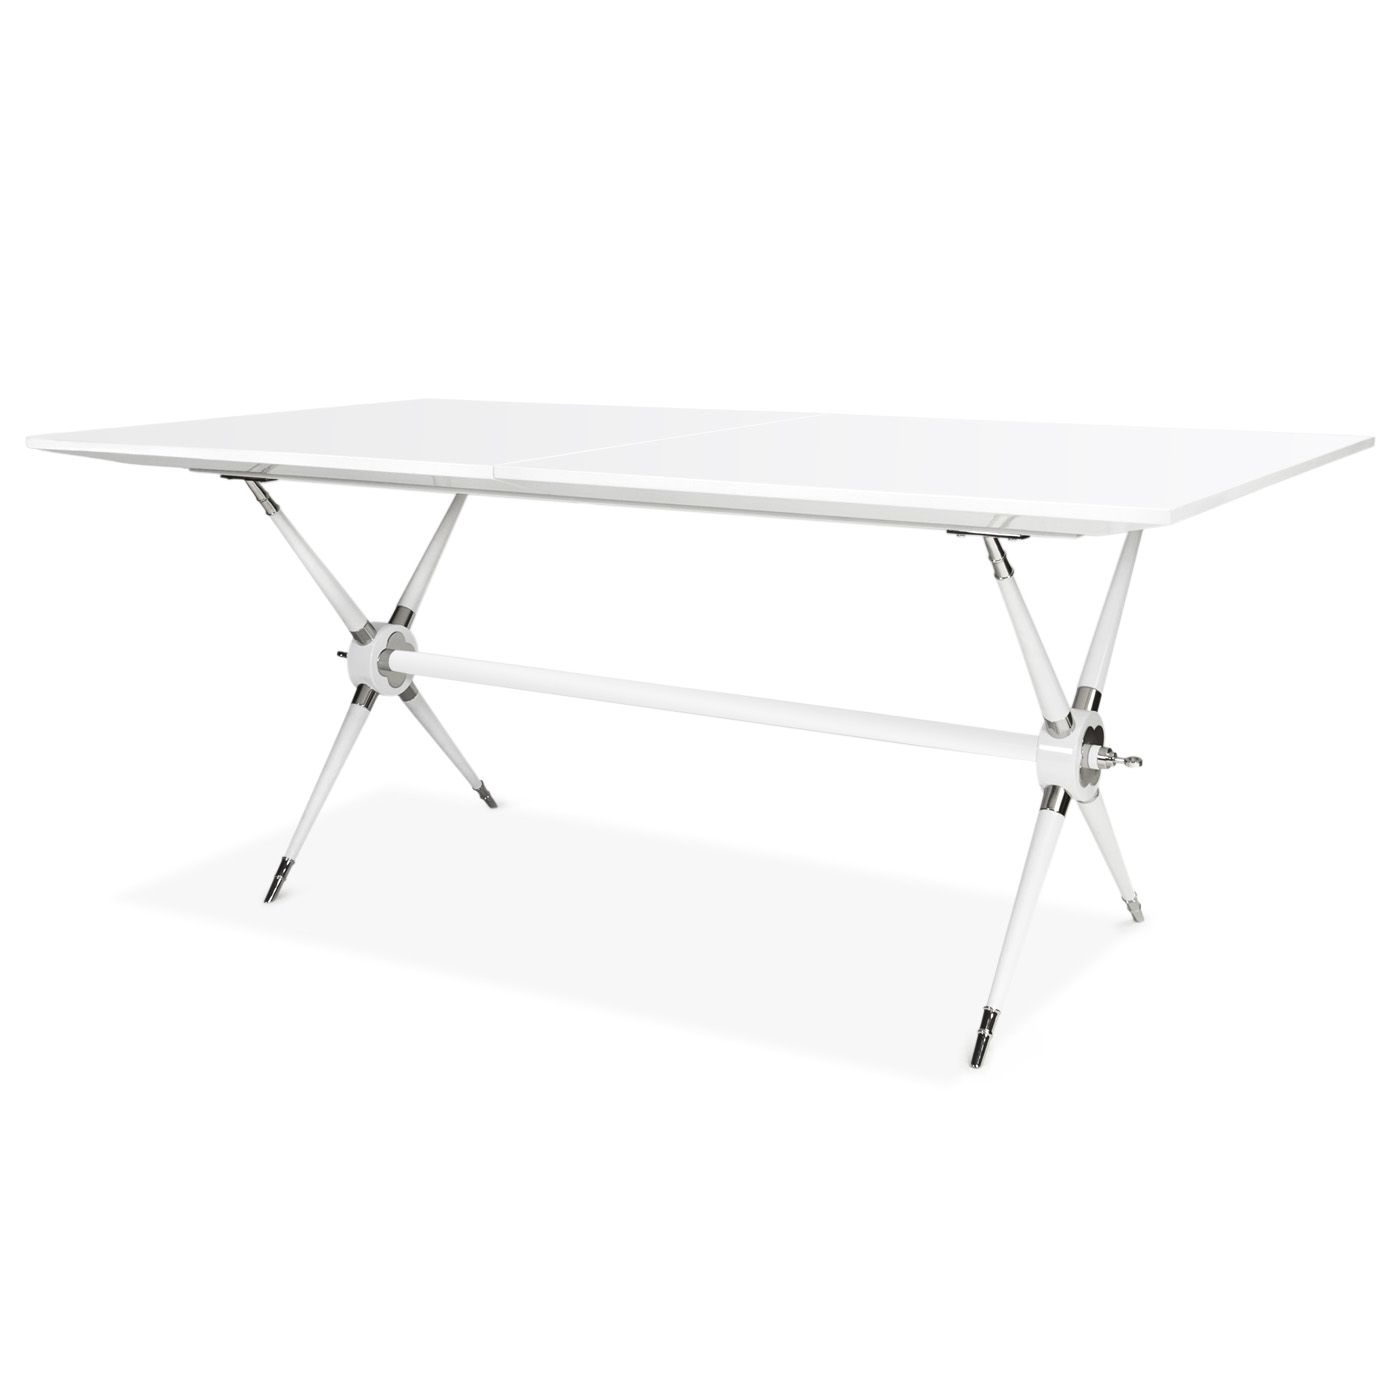 Jonathan Adler Rider Dining Table In Tables Dining Table Chairs Dining Table Luxury Modern Furniture